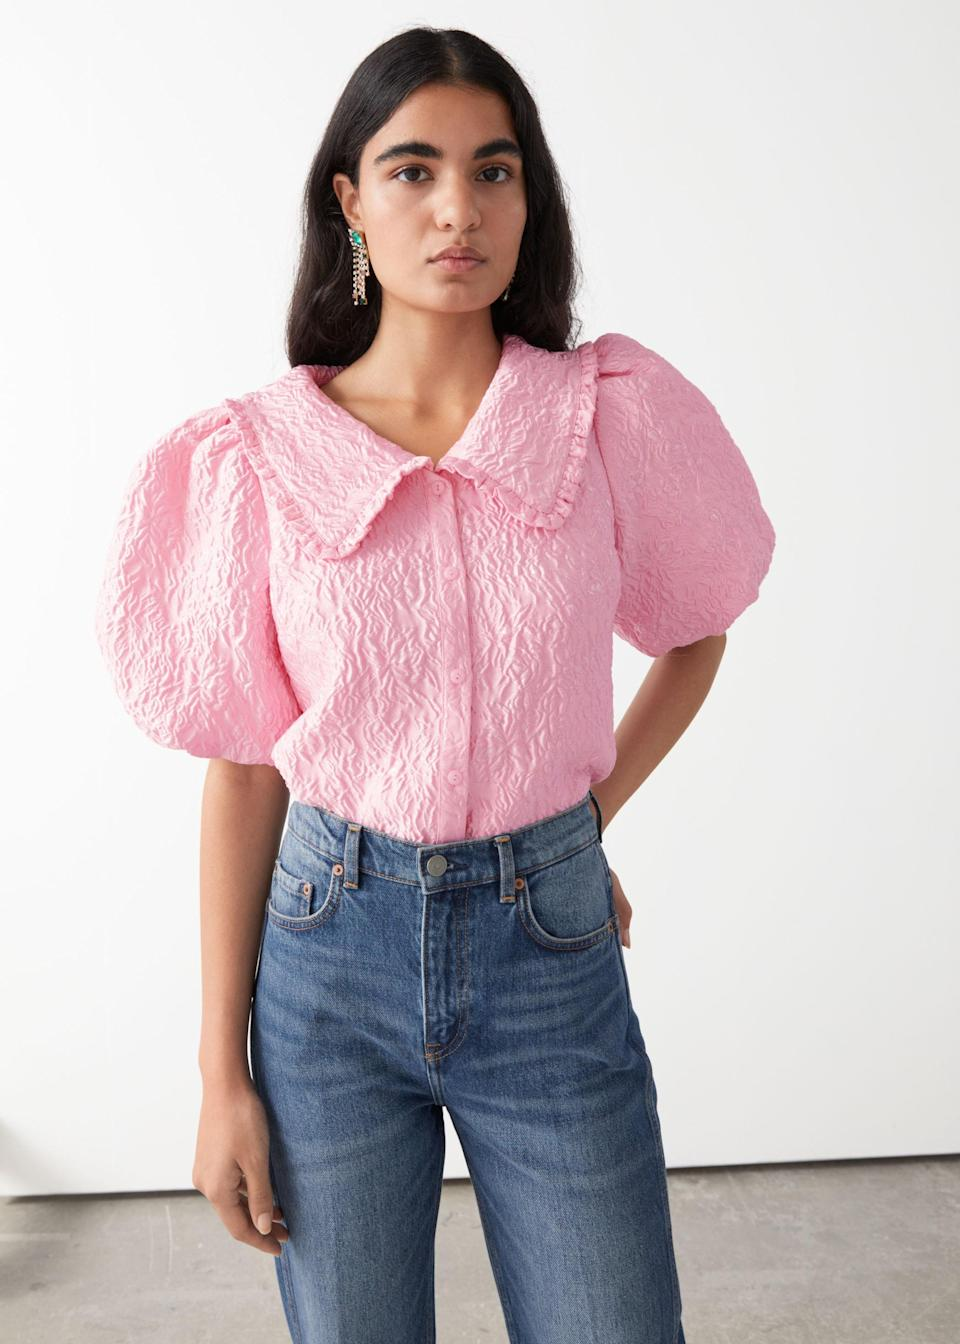 """A pop of pink never hurt anyone, no matter the season, and we're always here for a puff-sleeve moment. $69, & Other Stories. <a href=""""https://www.stories.com/en_usd/clothing/blouses-shirts/blouses/product.textured-ruffle-collar-puff-sleeve-top-pink.0883661001.html"""" rel=""""nofollow noopener"""" target=""""_blank"""" data-ylk=""""slk:Get it now!"""" class=""""link rapid-noclick-resp"""">Get it now!</a>"""